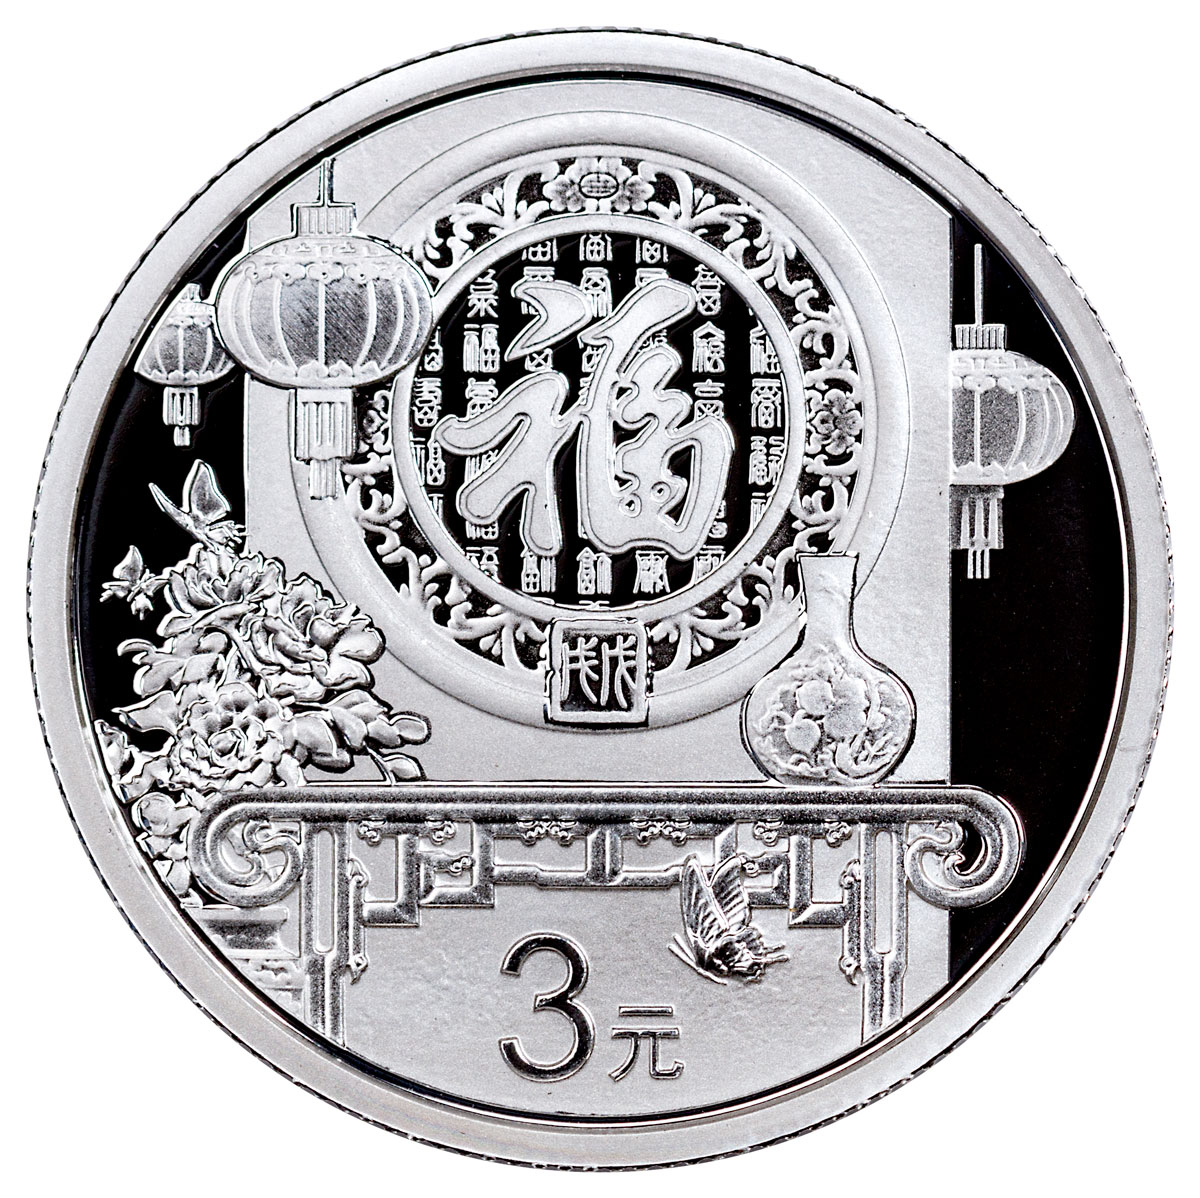 2018 China New Year Celebration 8 g Silver ¥3 Coin GEM BU